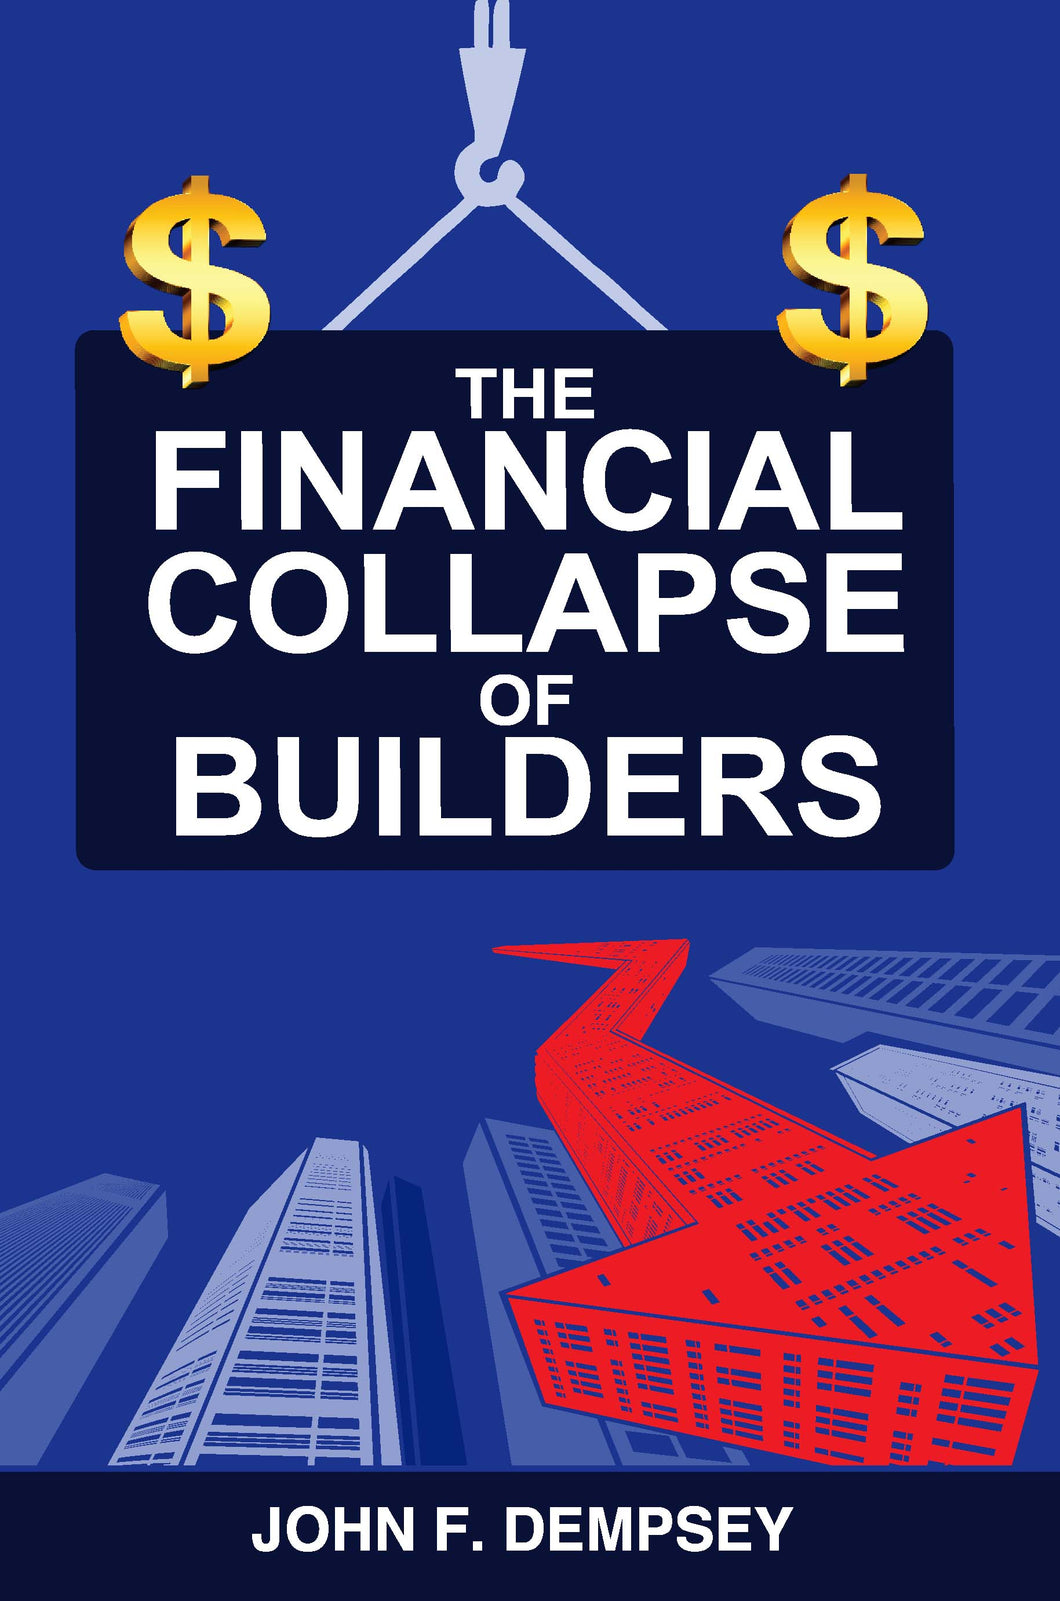 The Financial Collapse of Builders